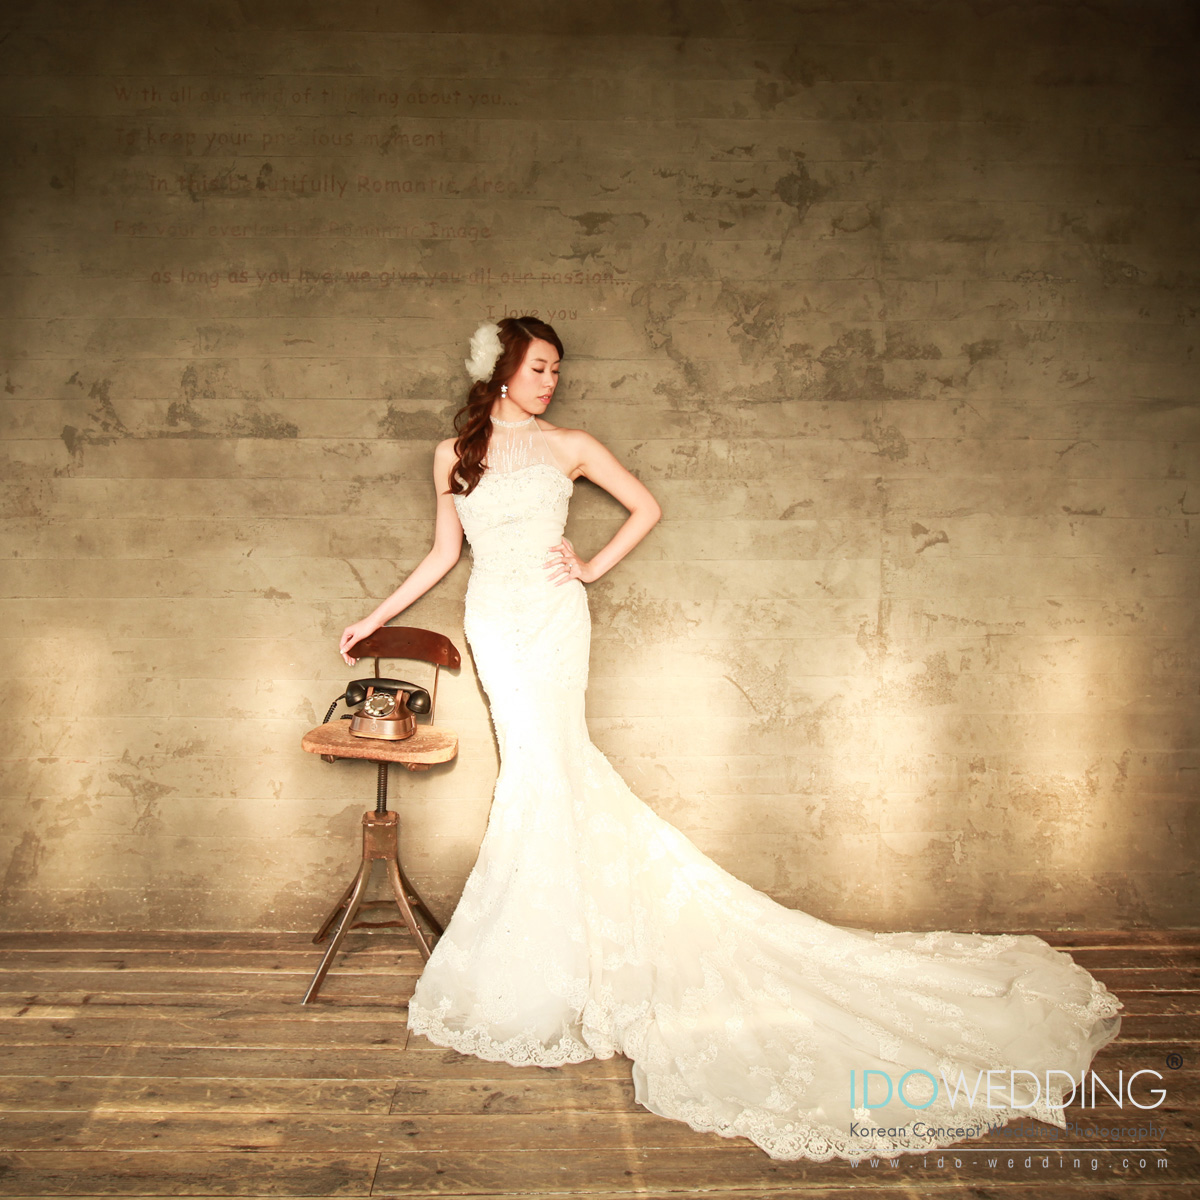 Korean Wedding Photo By IDOWEDDING